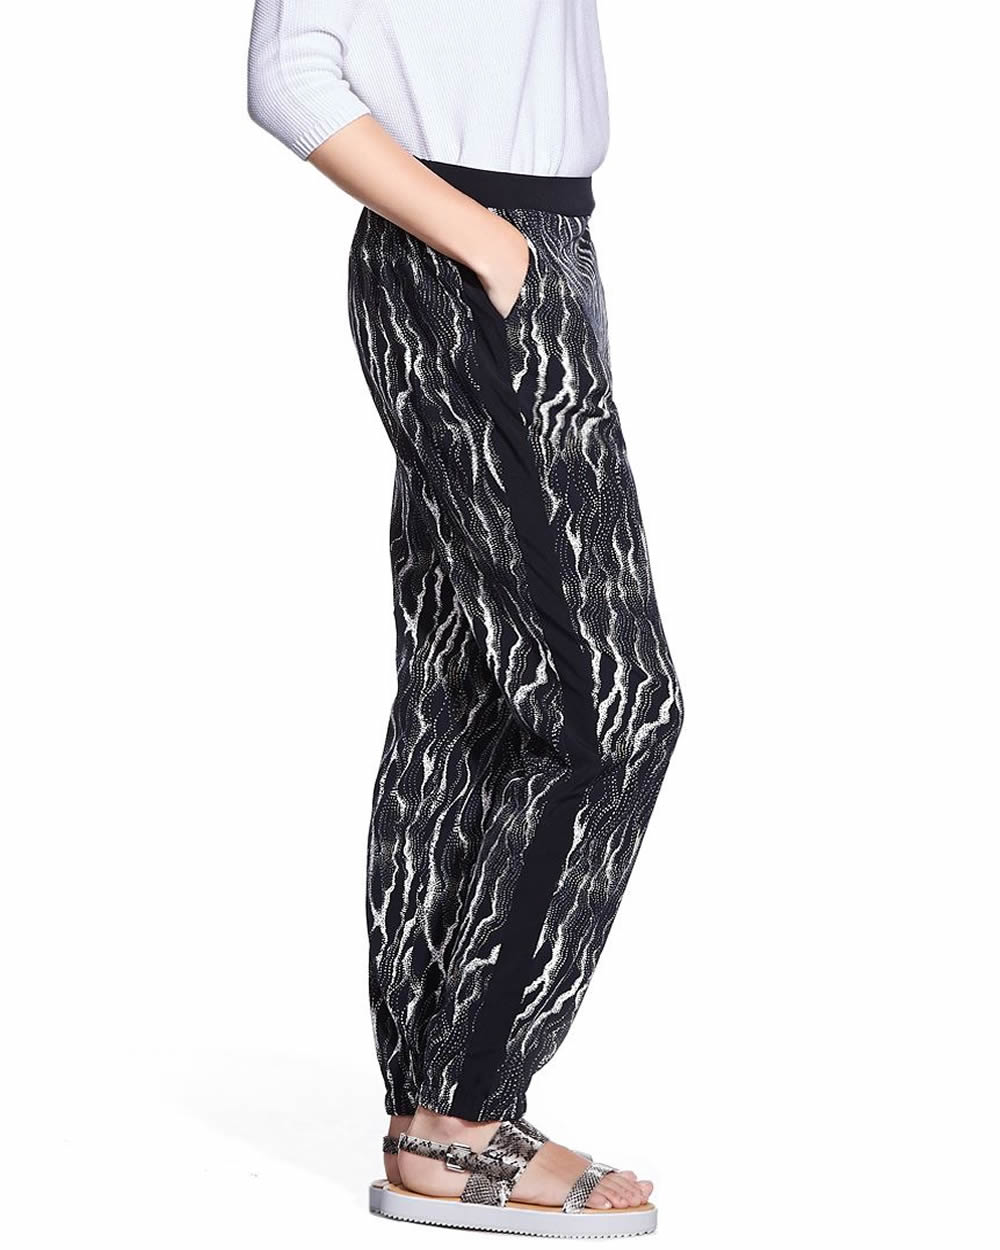 Shop online for Petite Savvy Printed Straight Leg Pant - In Every Story. Find Pants, Clothing and more at Penningtons.